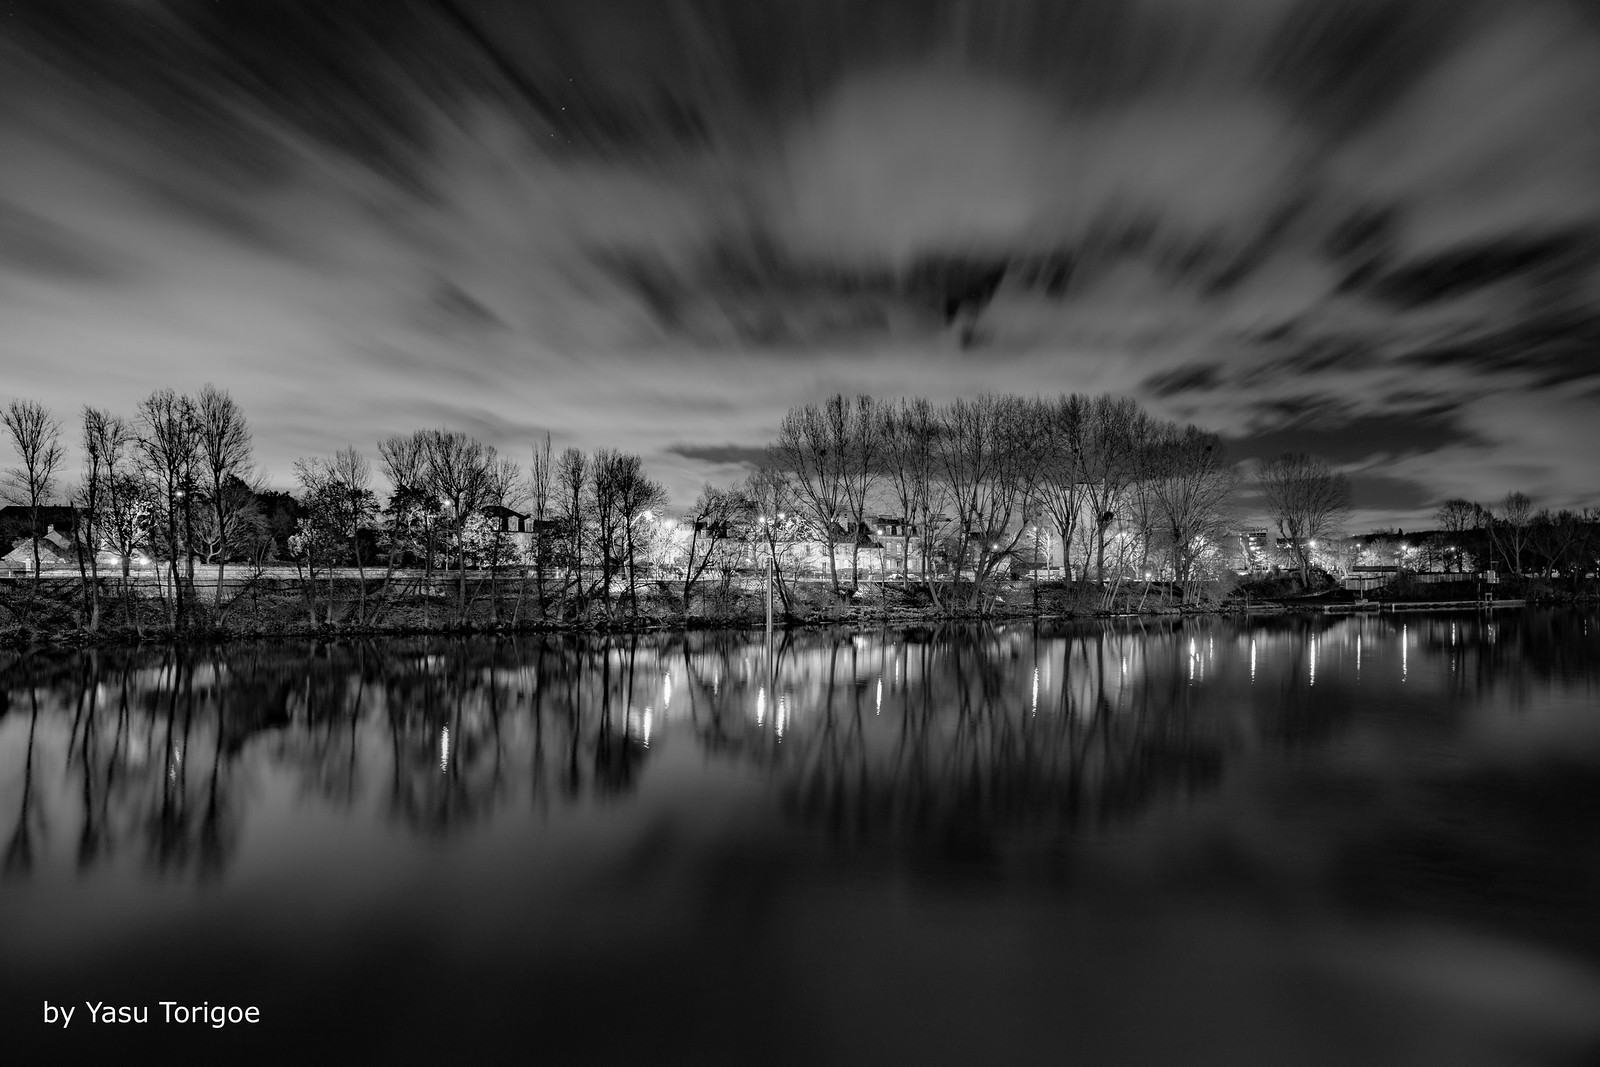 Black & White Night View of the Right Bank of the Seine River in Le Pecq, France (Bright Light from the City of Paris)-9